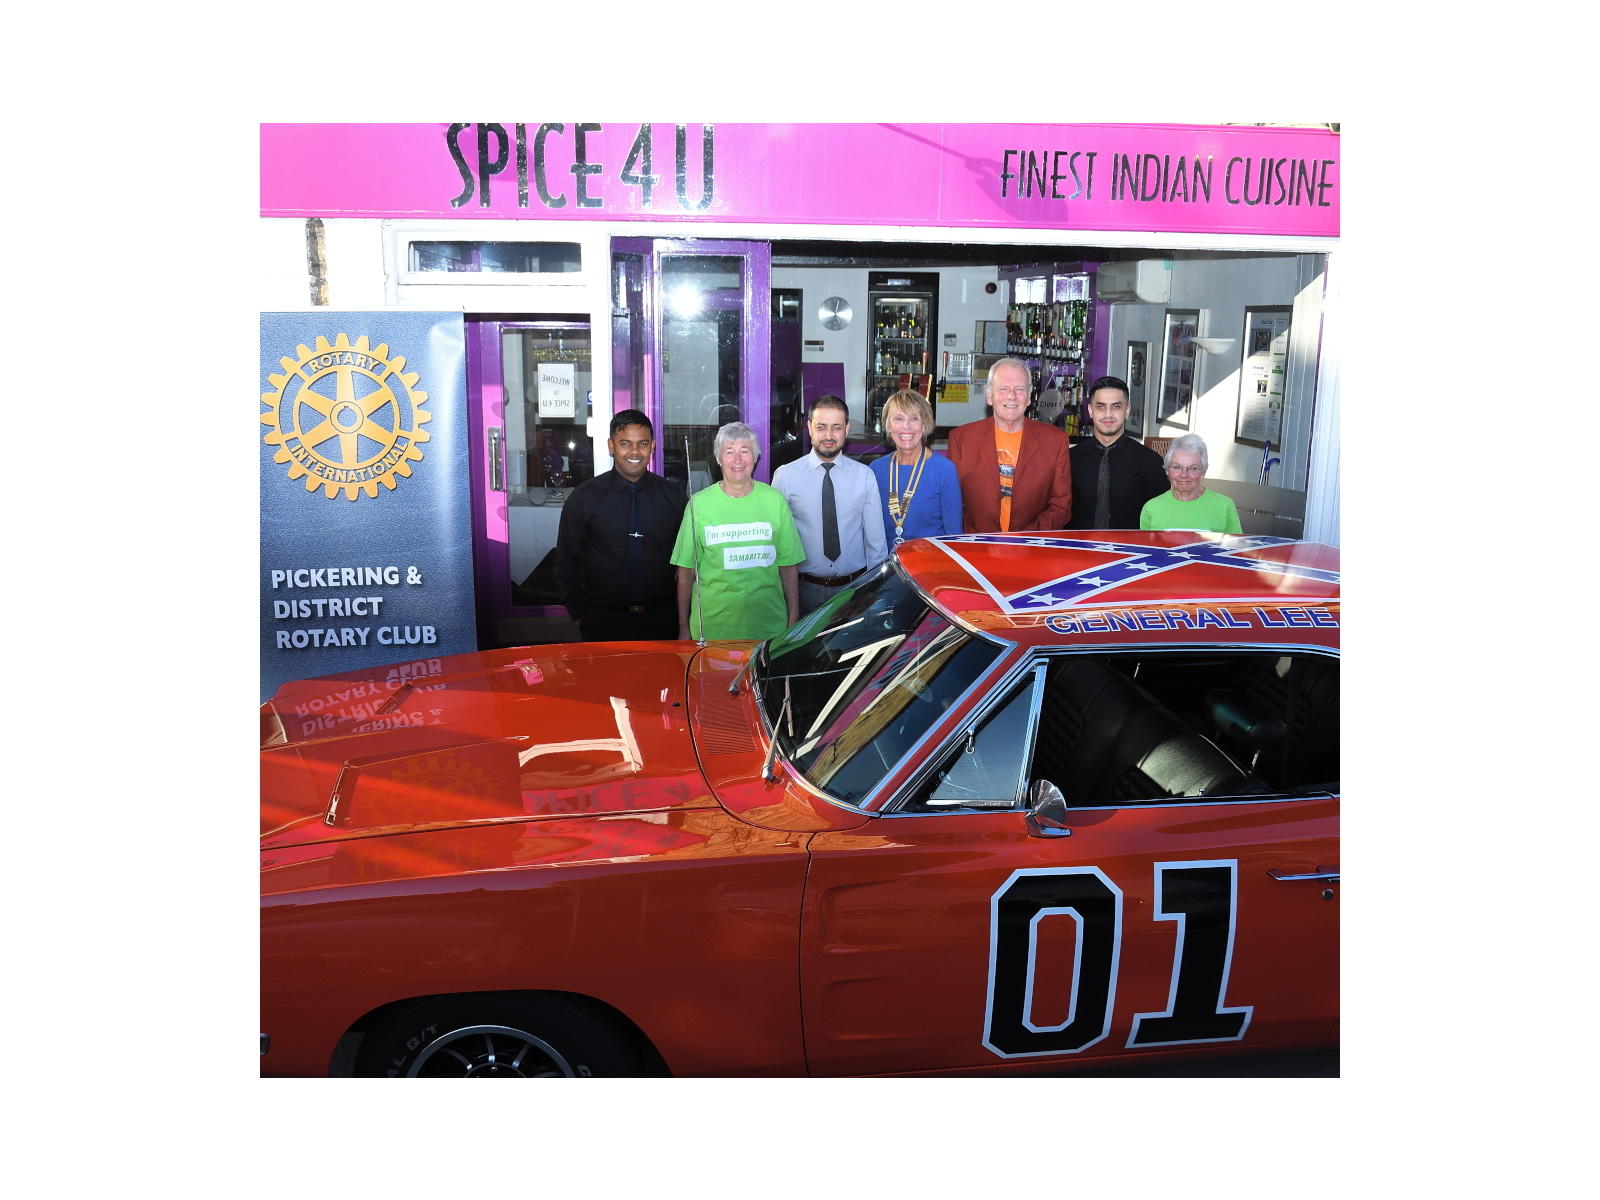 Pickering Rotary Club members with the General Lee at the Spice 4U in Pickering